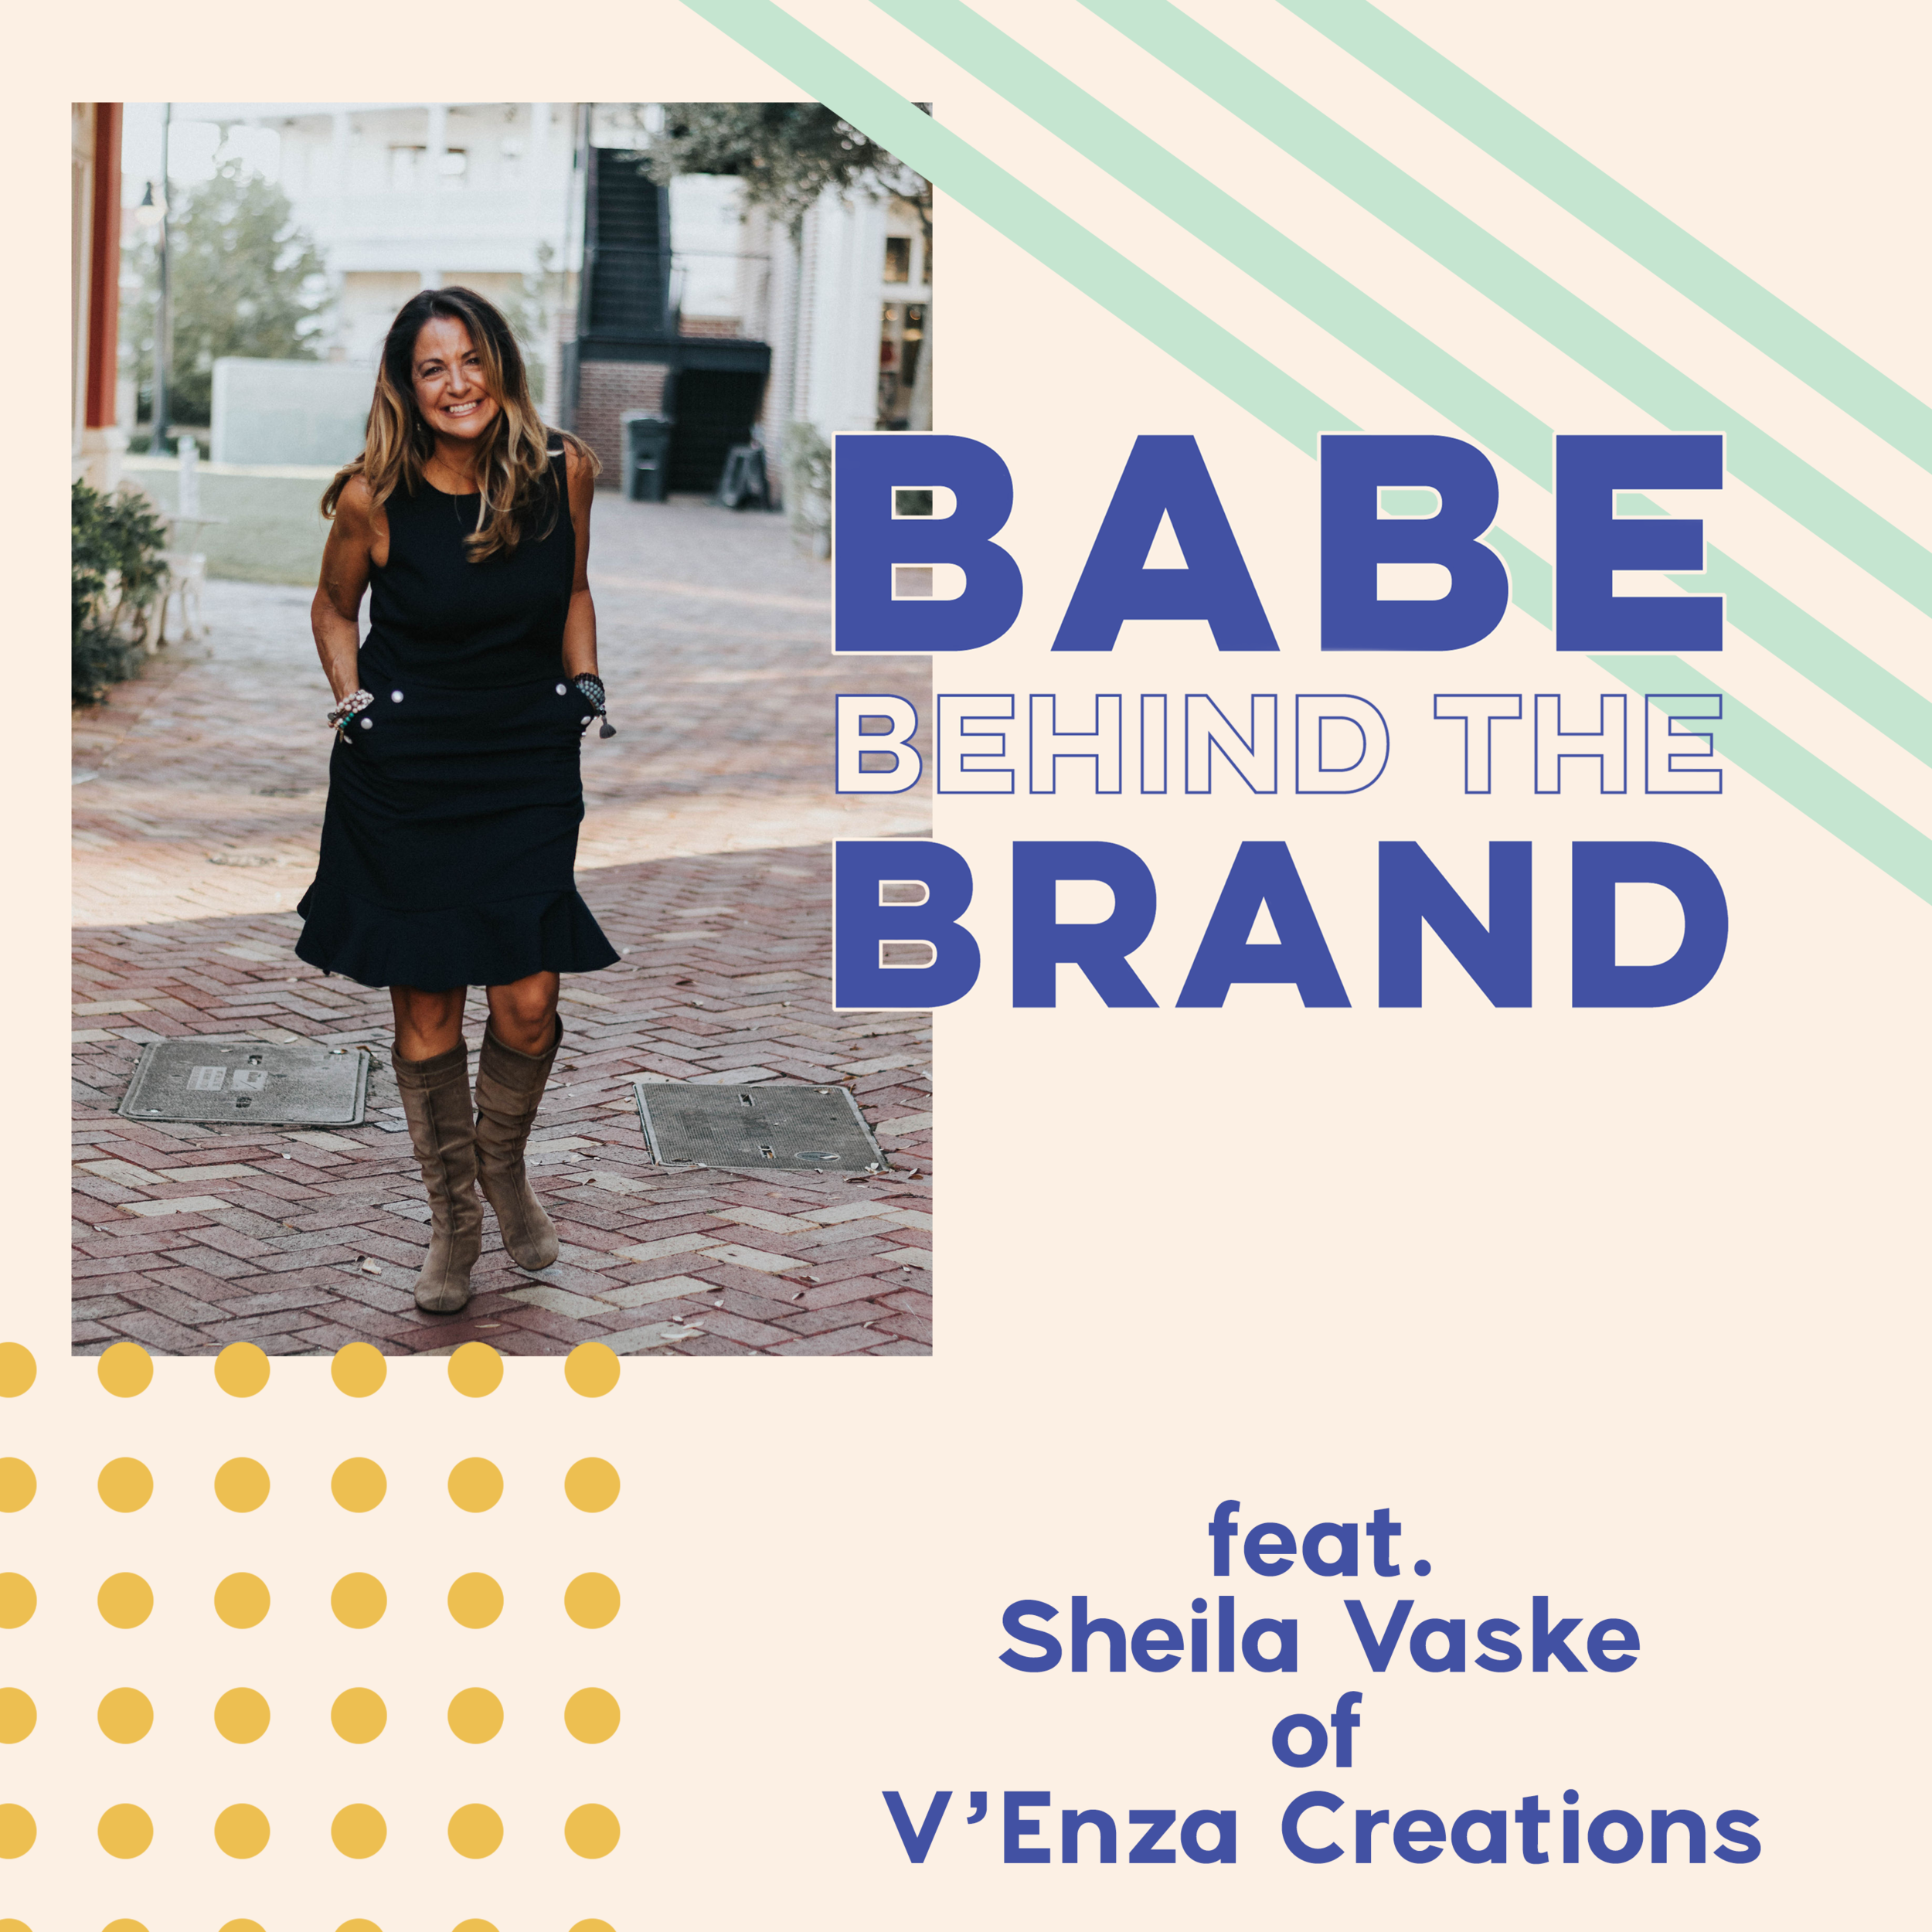 Sheila-vaske-venza-creations-babe-behind-the-brand-babe-crafted-podcast.png